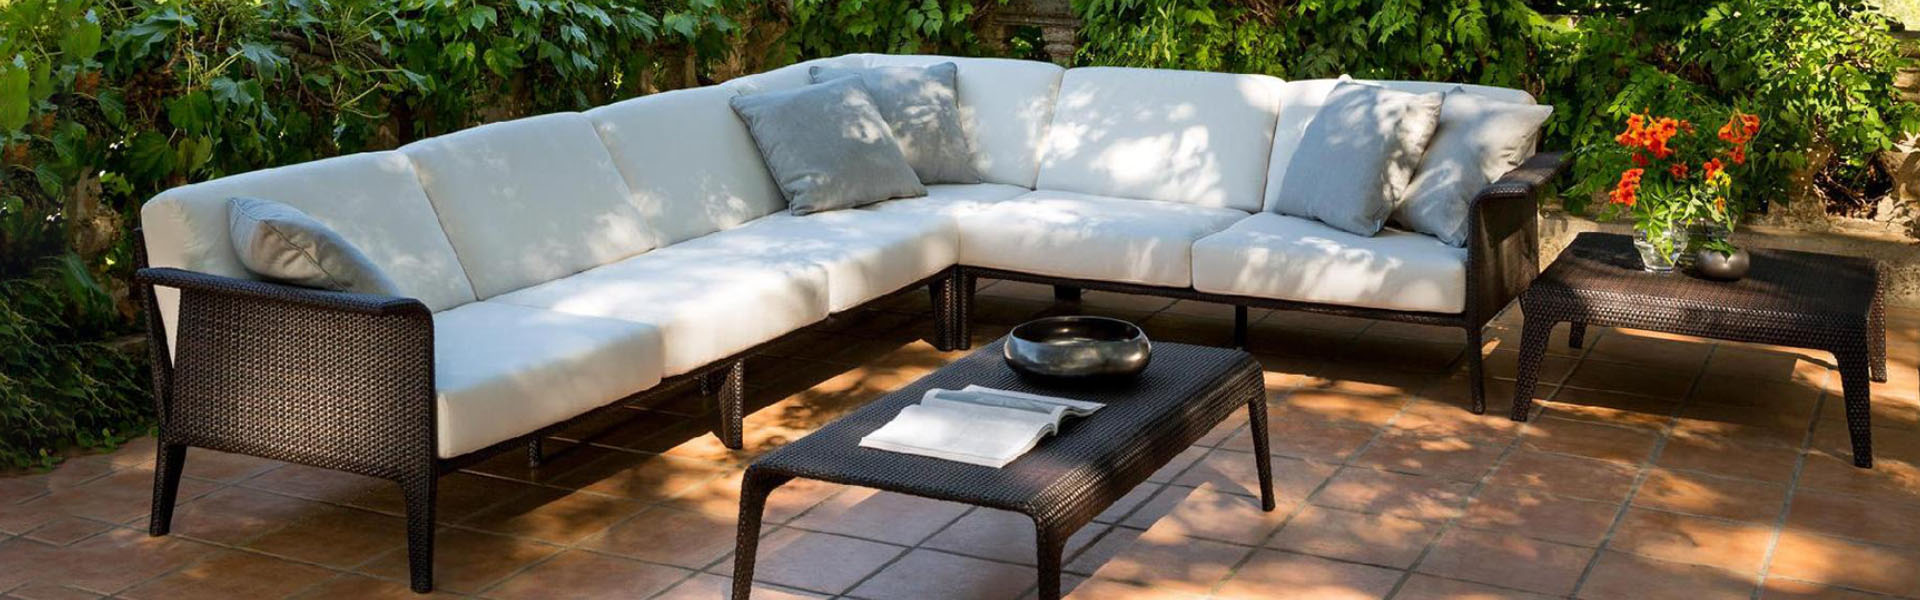 Buy Rattan Furniture at Best Prices - Shop at Weavecraft